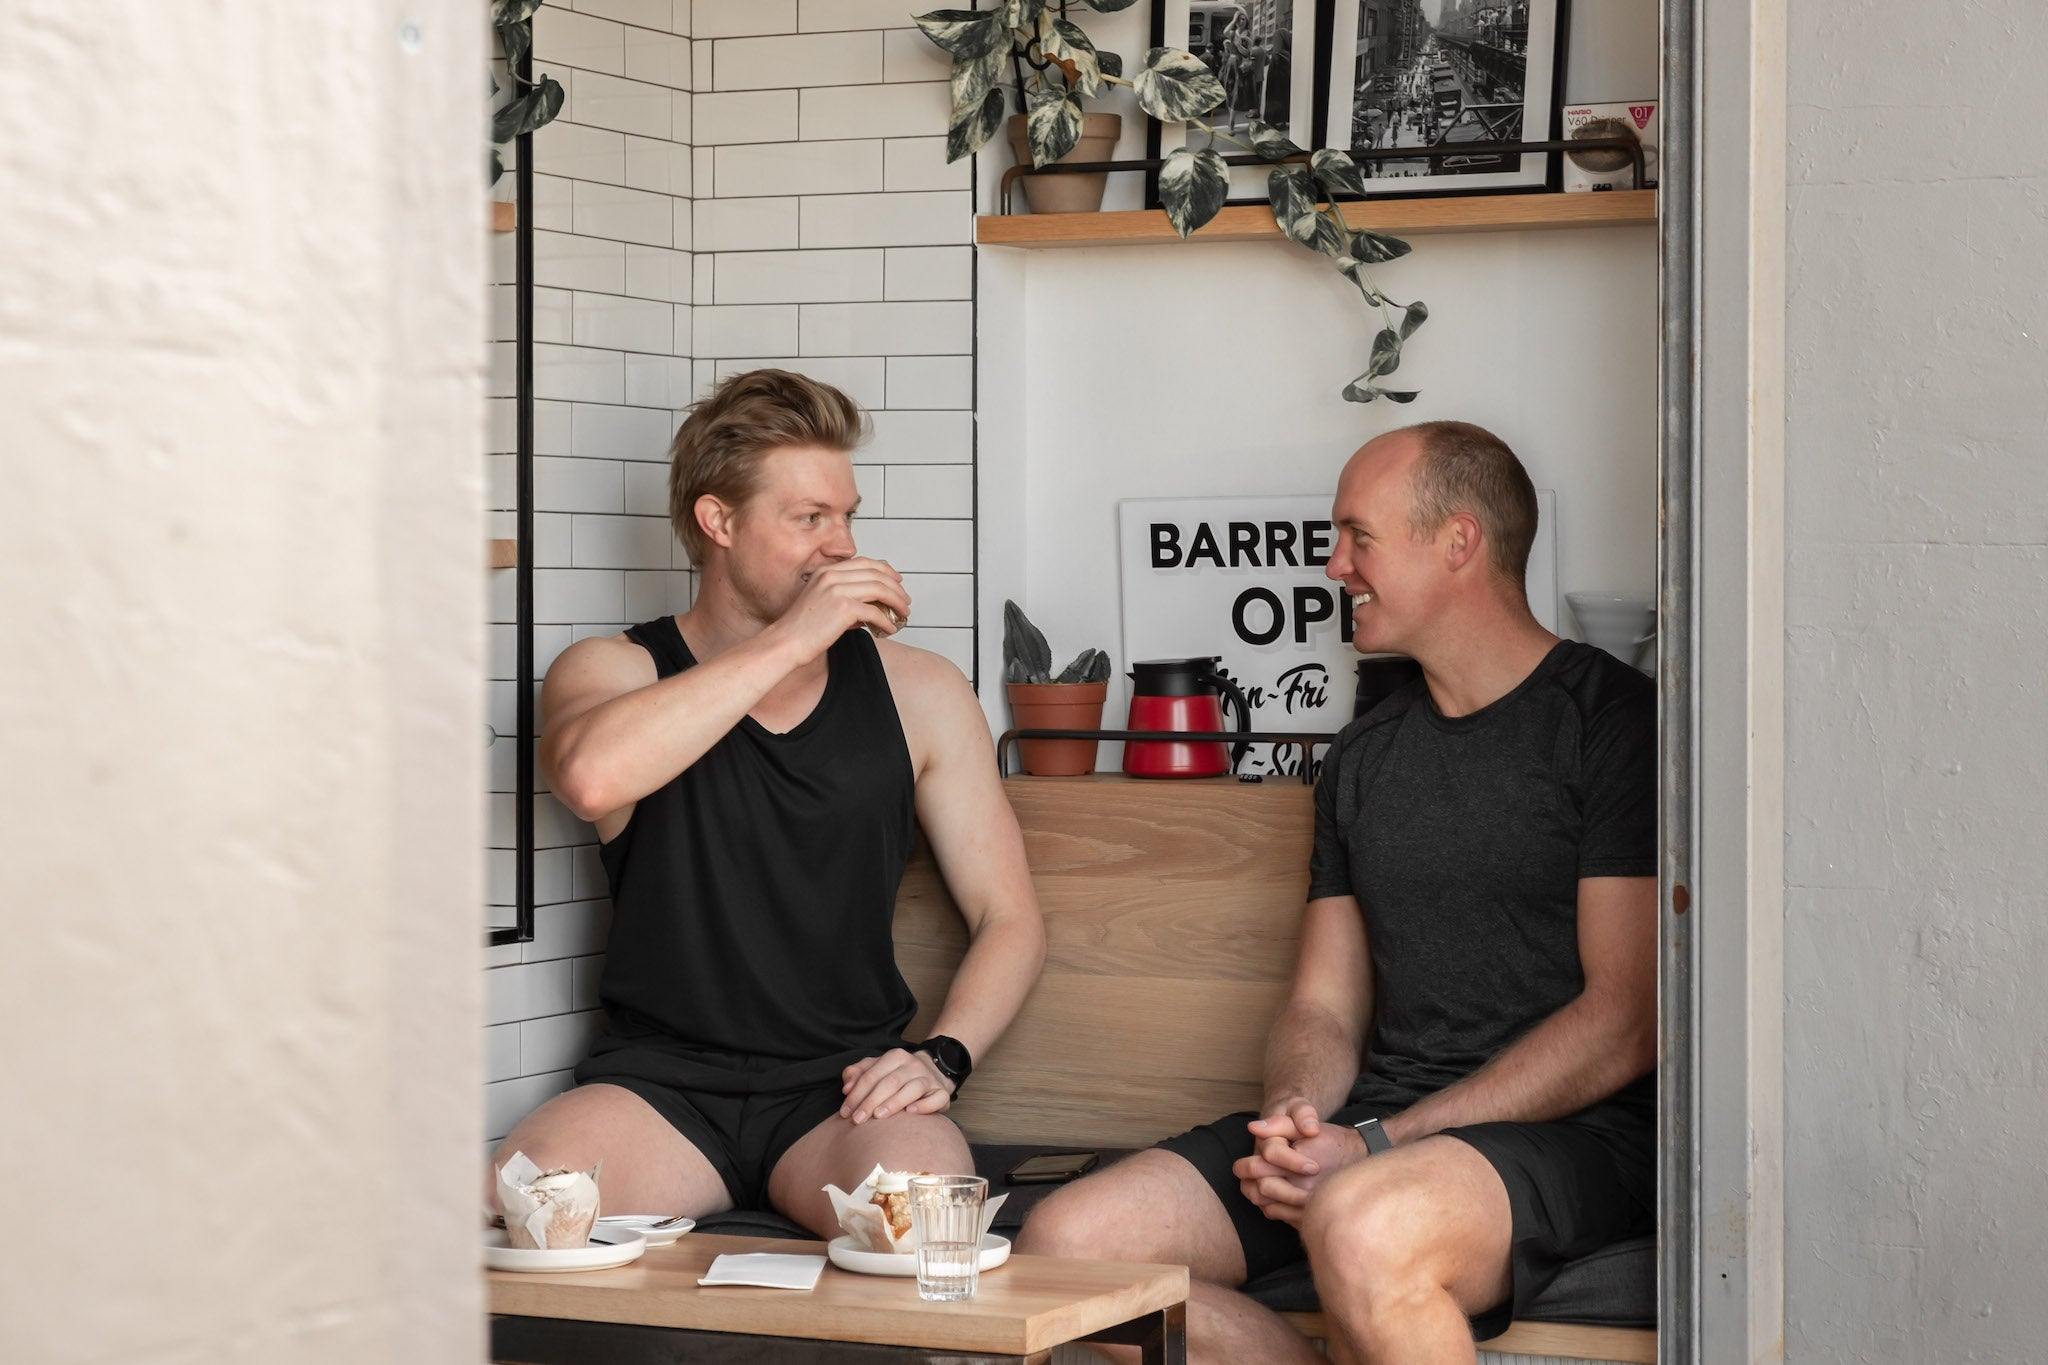 Two men having a conversation and coffee at Barrel One in Manly, Sydney